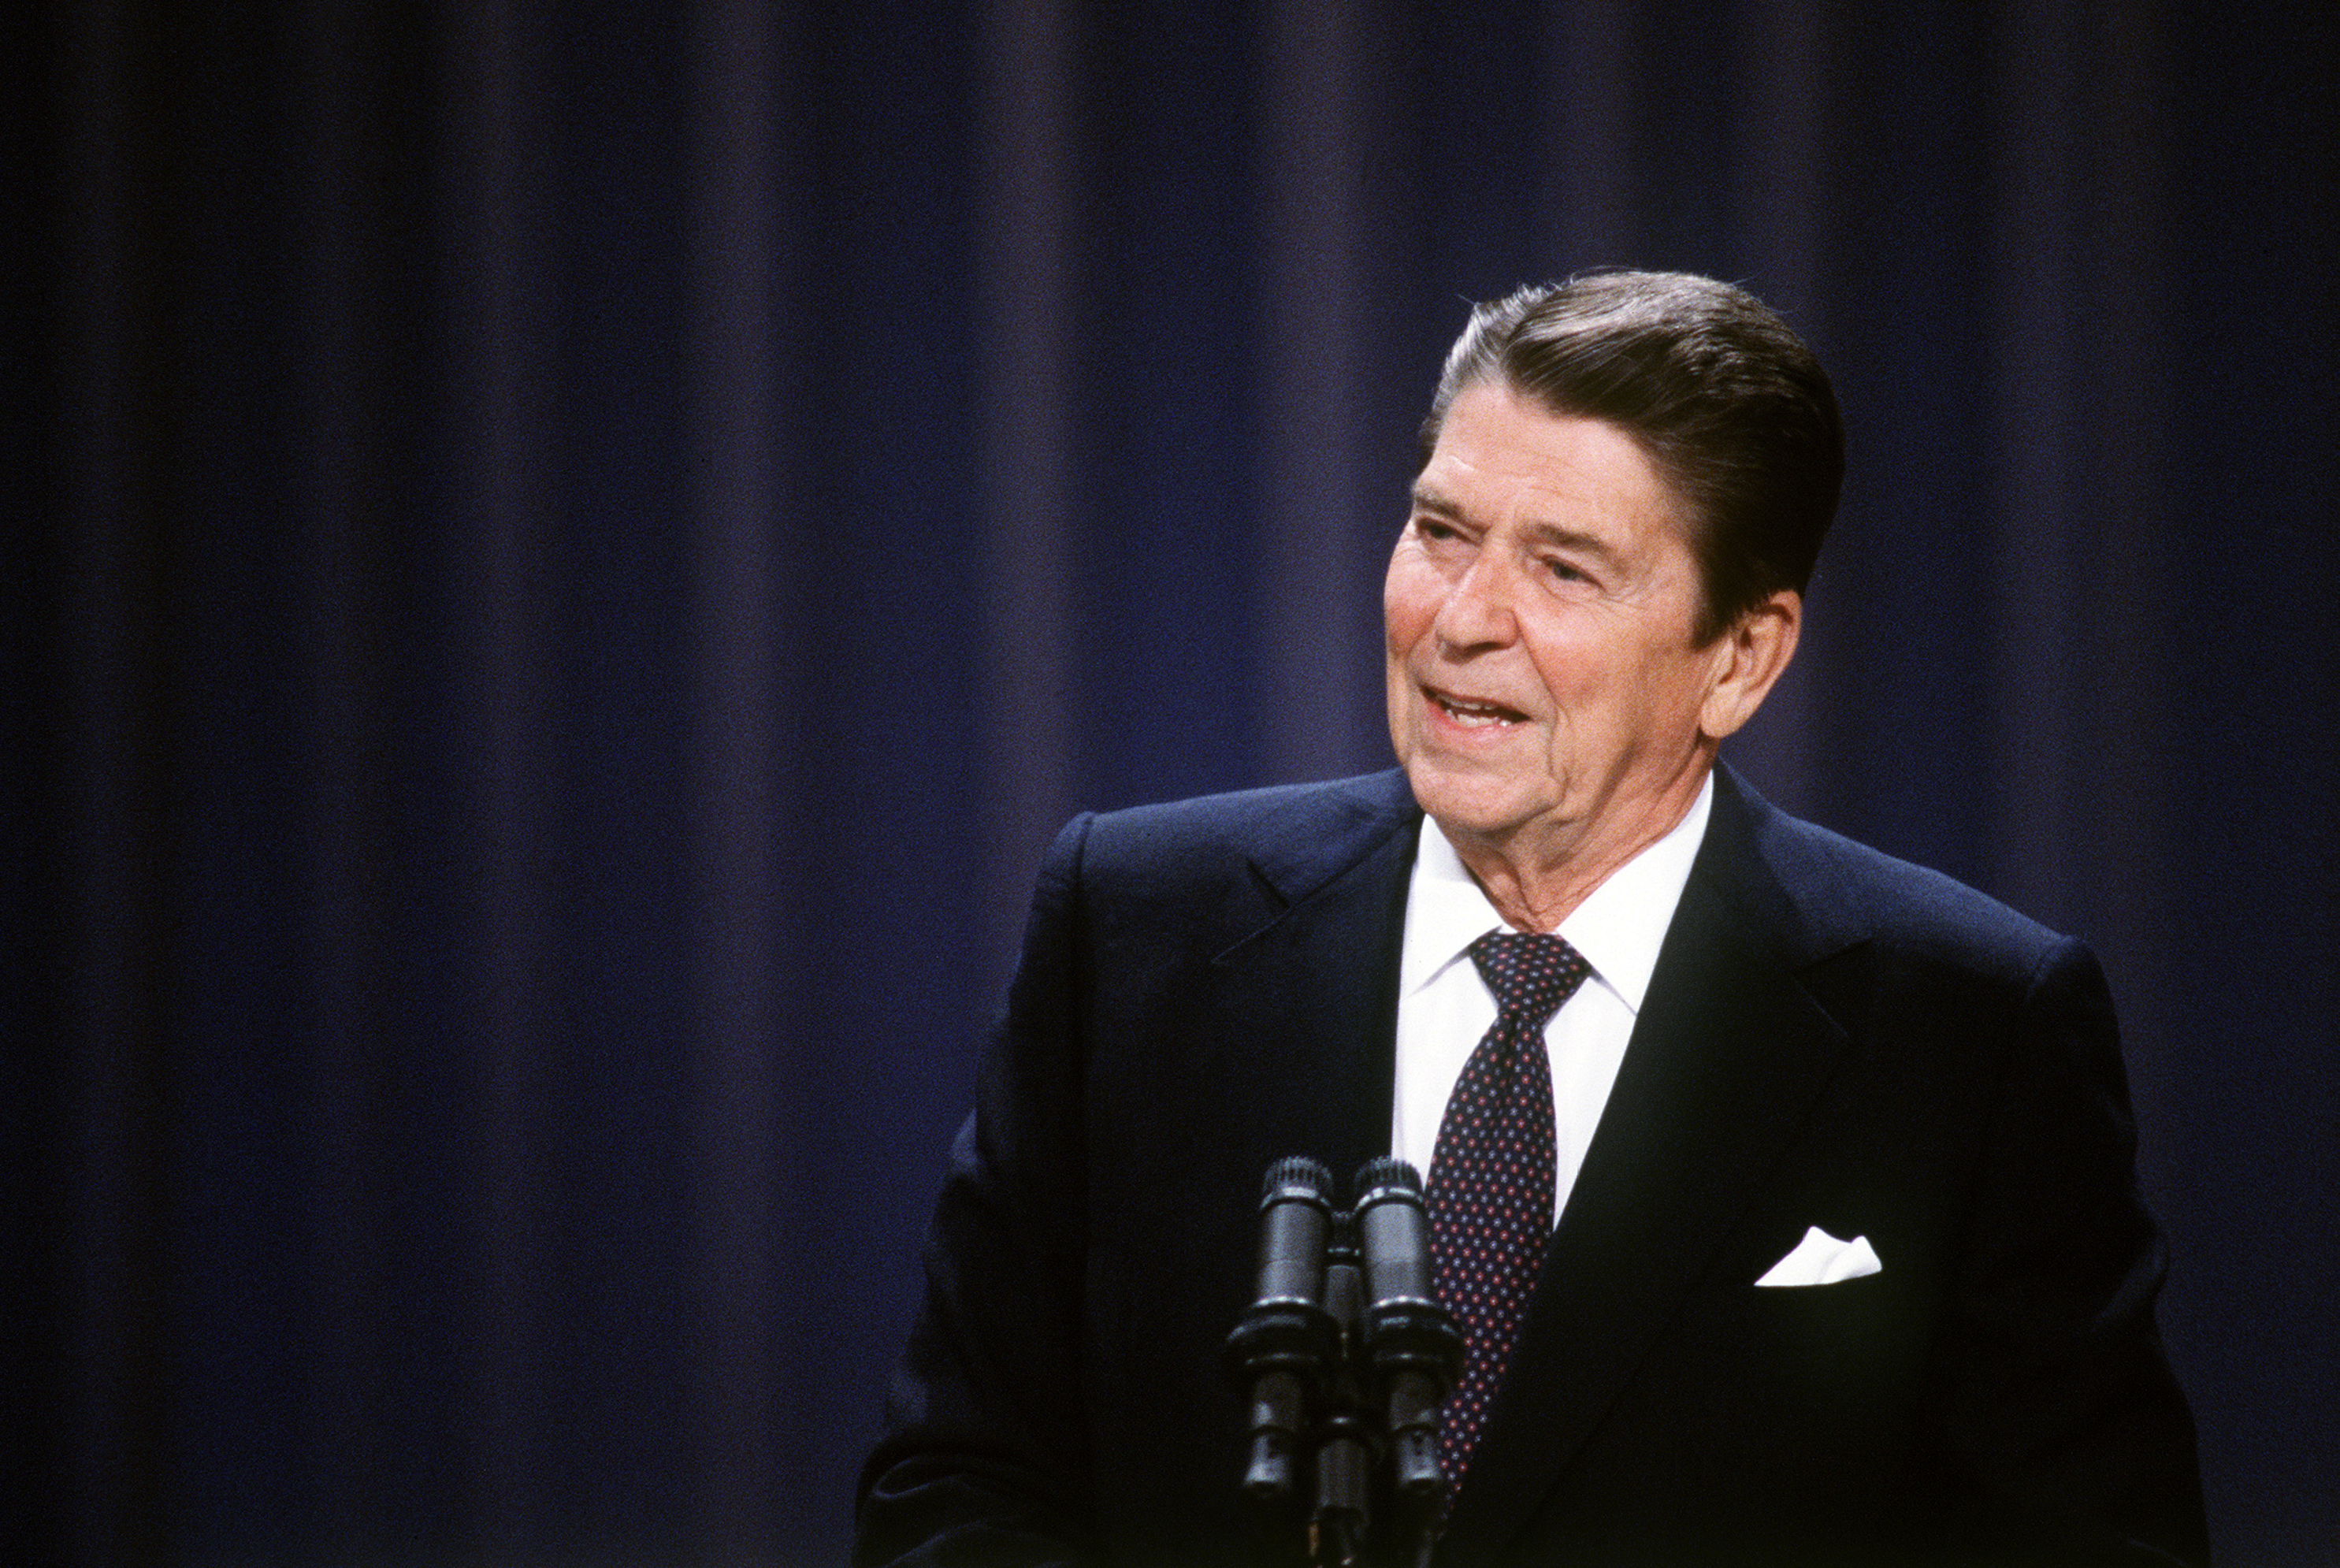 President Reagan, who signed the Computer Fraud and Abuse Act into law in 1984, brought up WarGames during a discussion with members of Congress about arms control